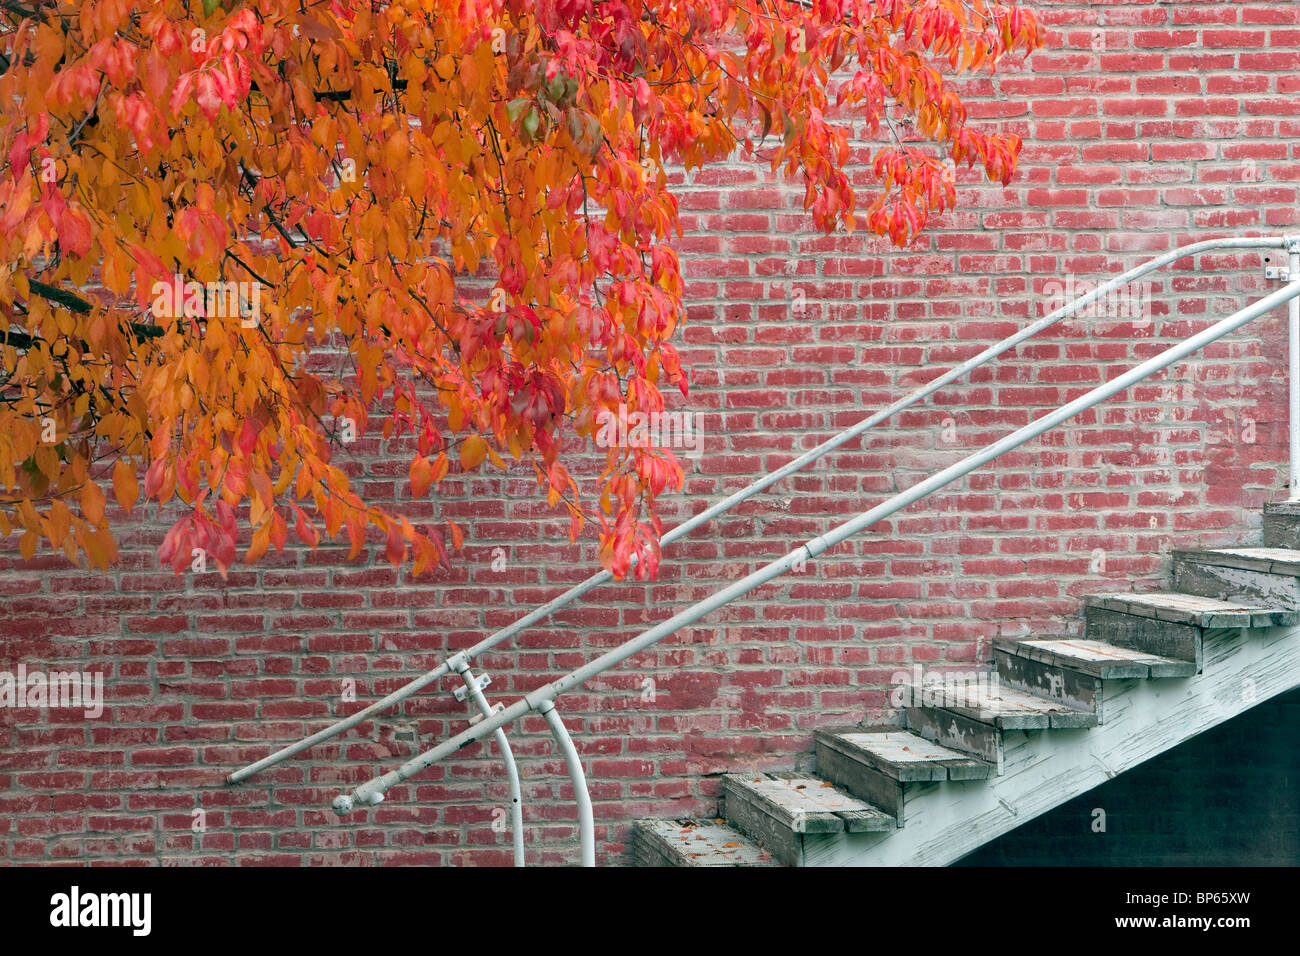 Fall color next to brick building and stairs. Jacksonville, Oregon - Stock Image